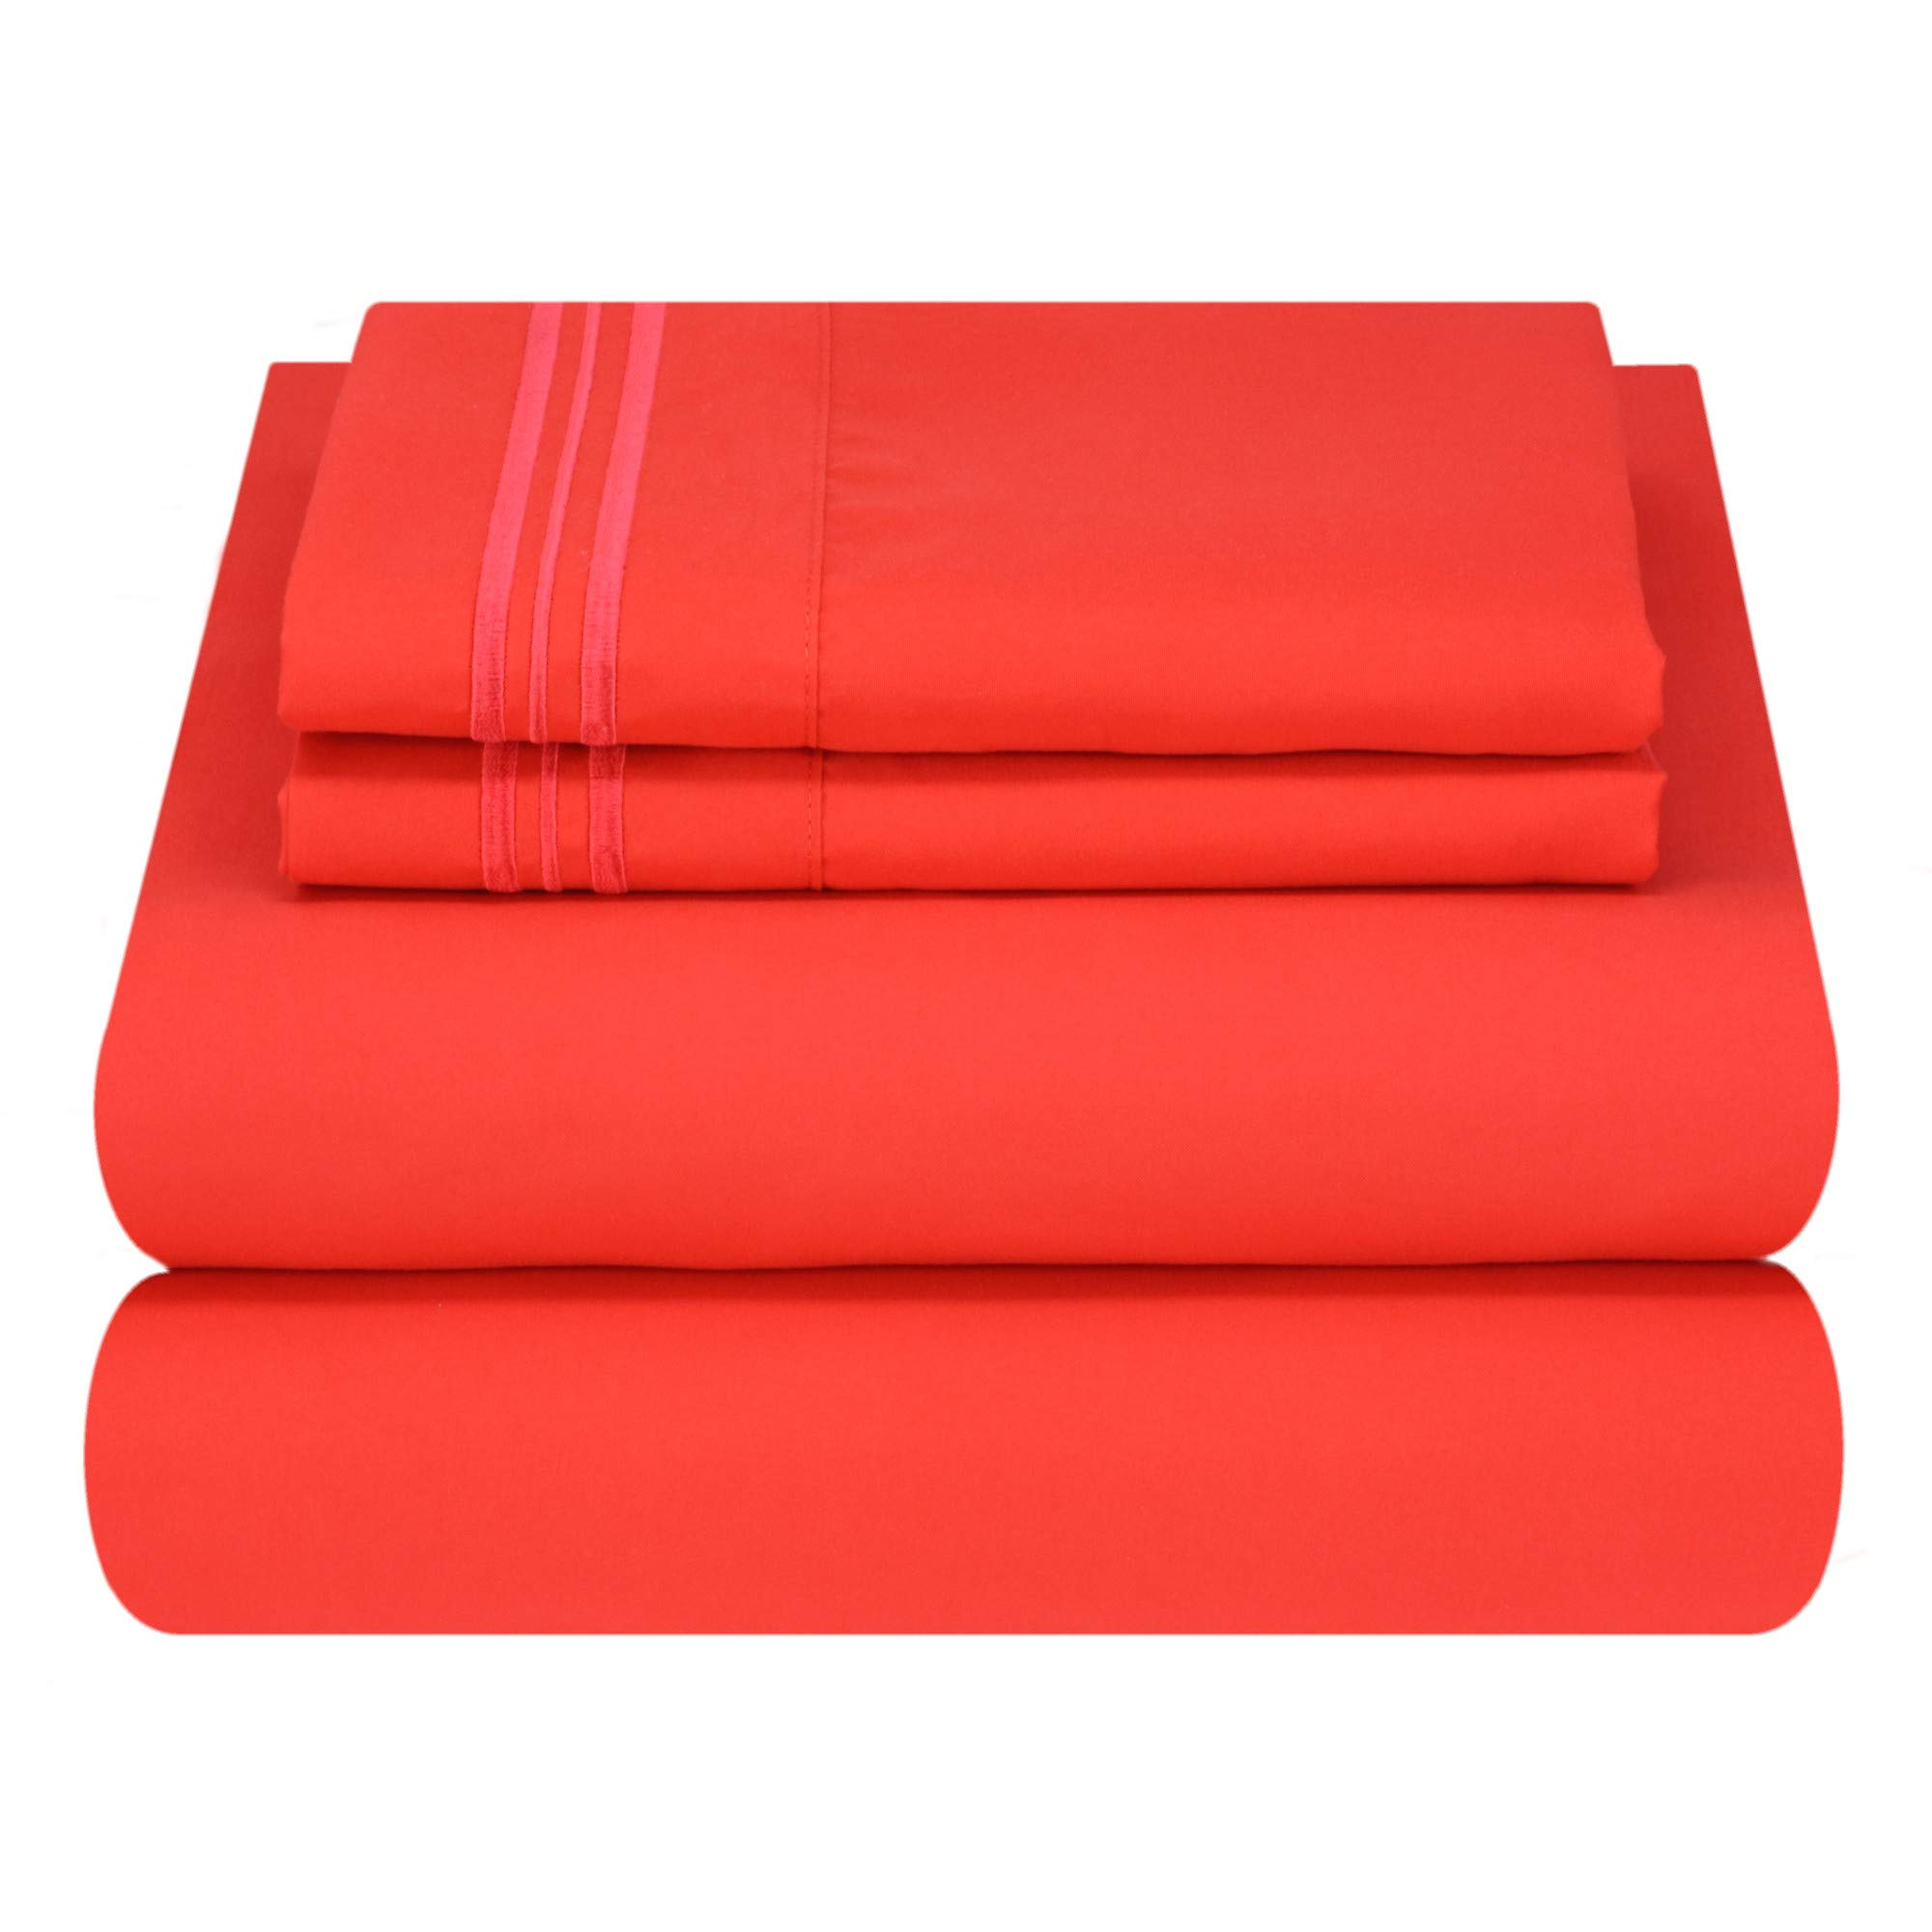 Mezzati Luxury Bed Sheet Set - Soft and Comfortable 1800 Prestige Collection - Brushed Microfiber Bedding (Red, Cal King Size)